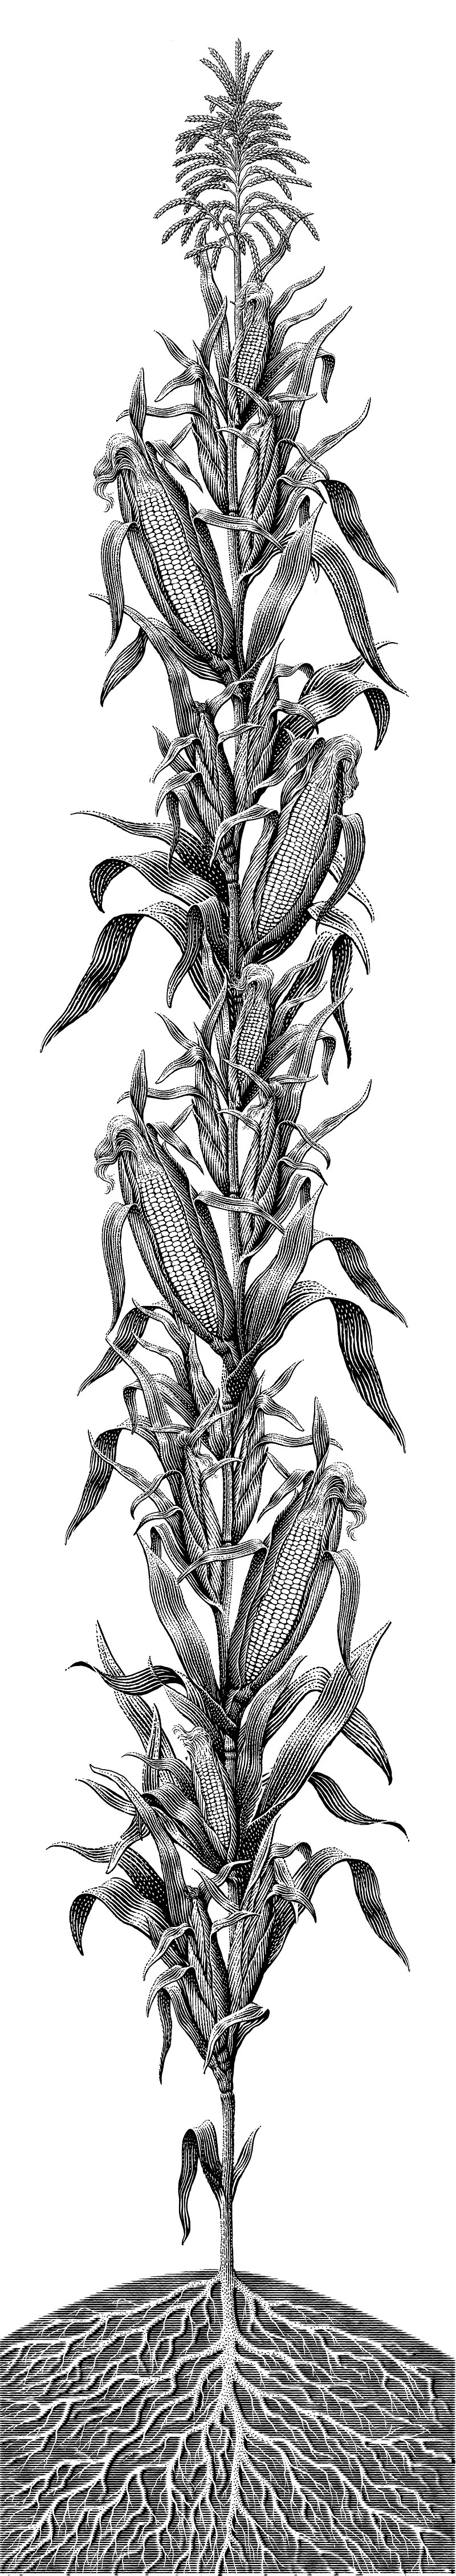 Tall Corn Stalk